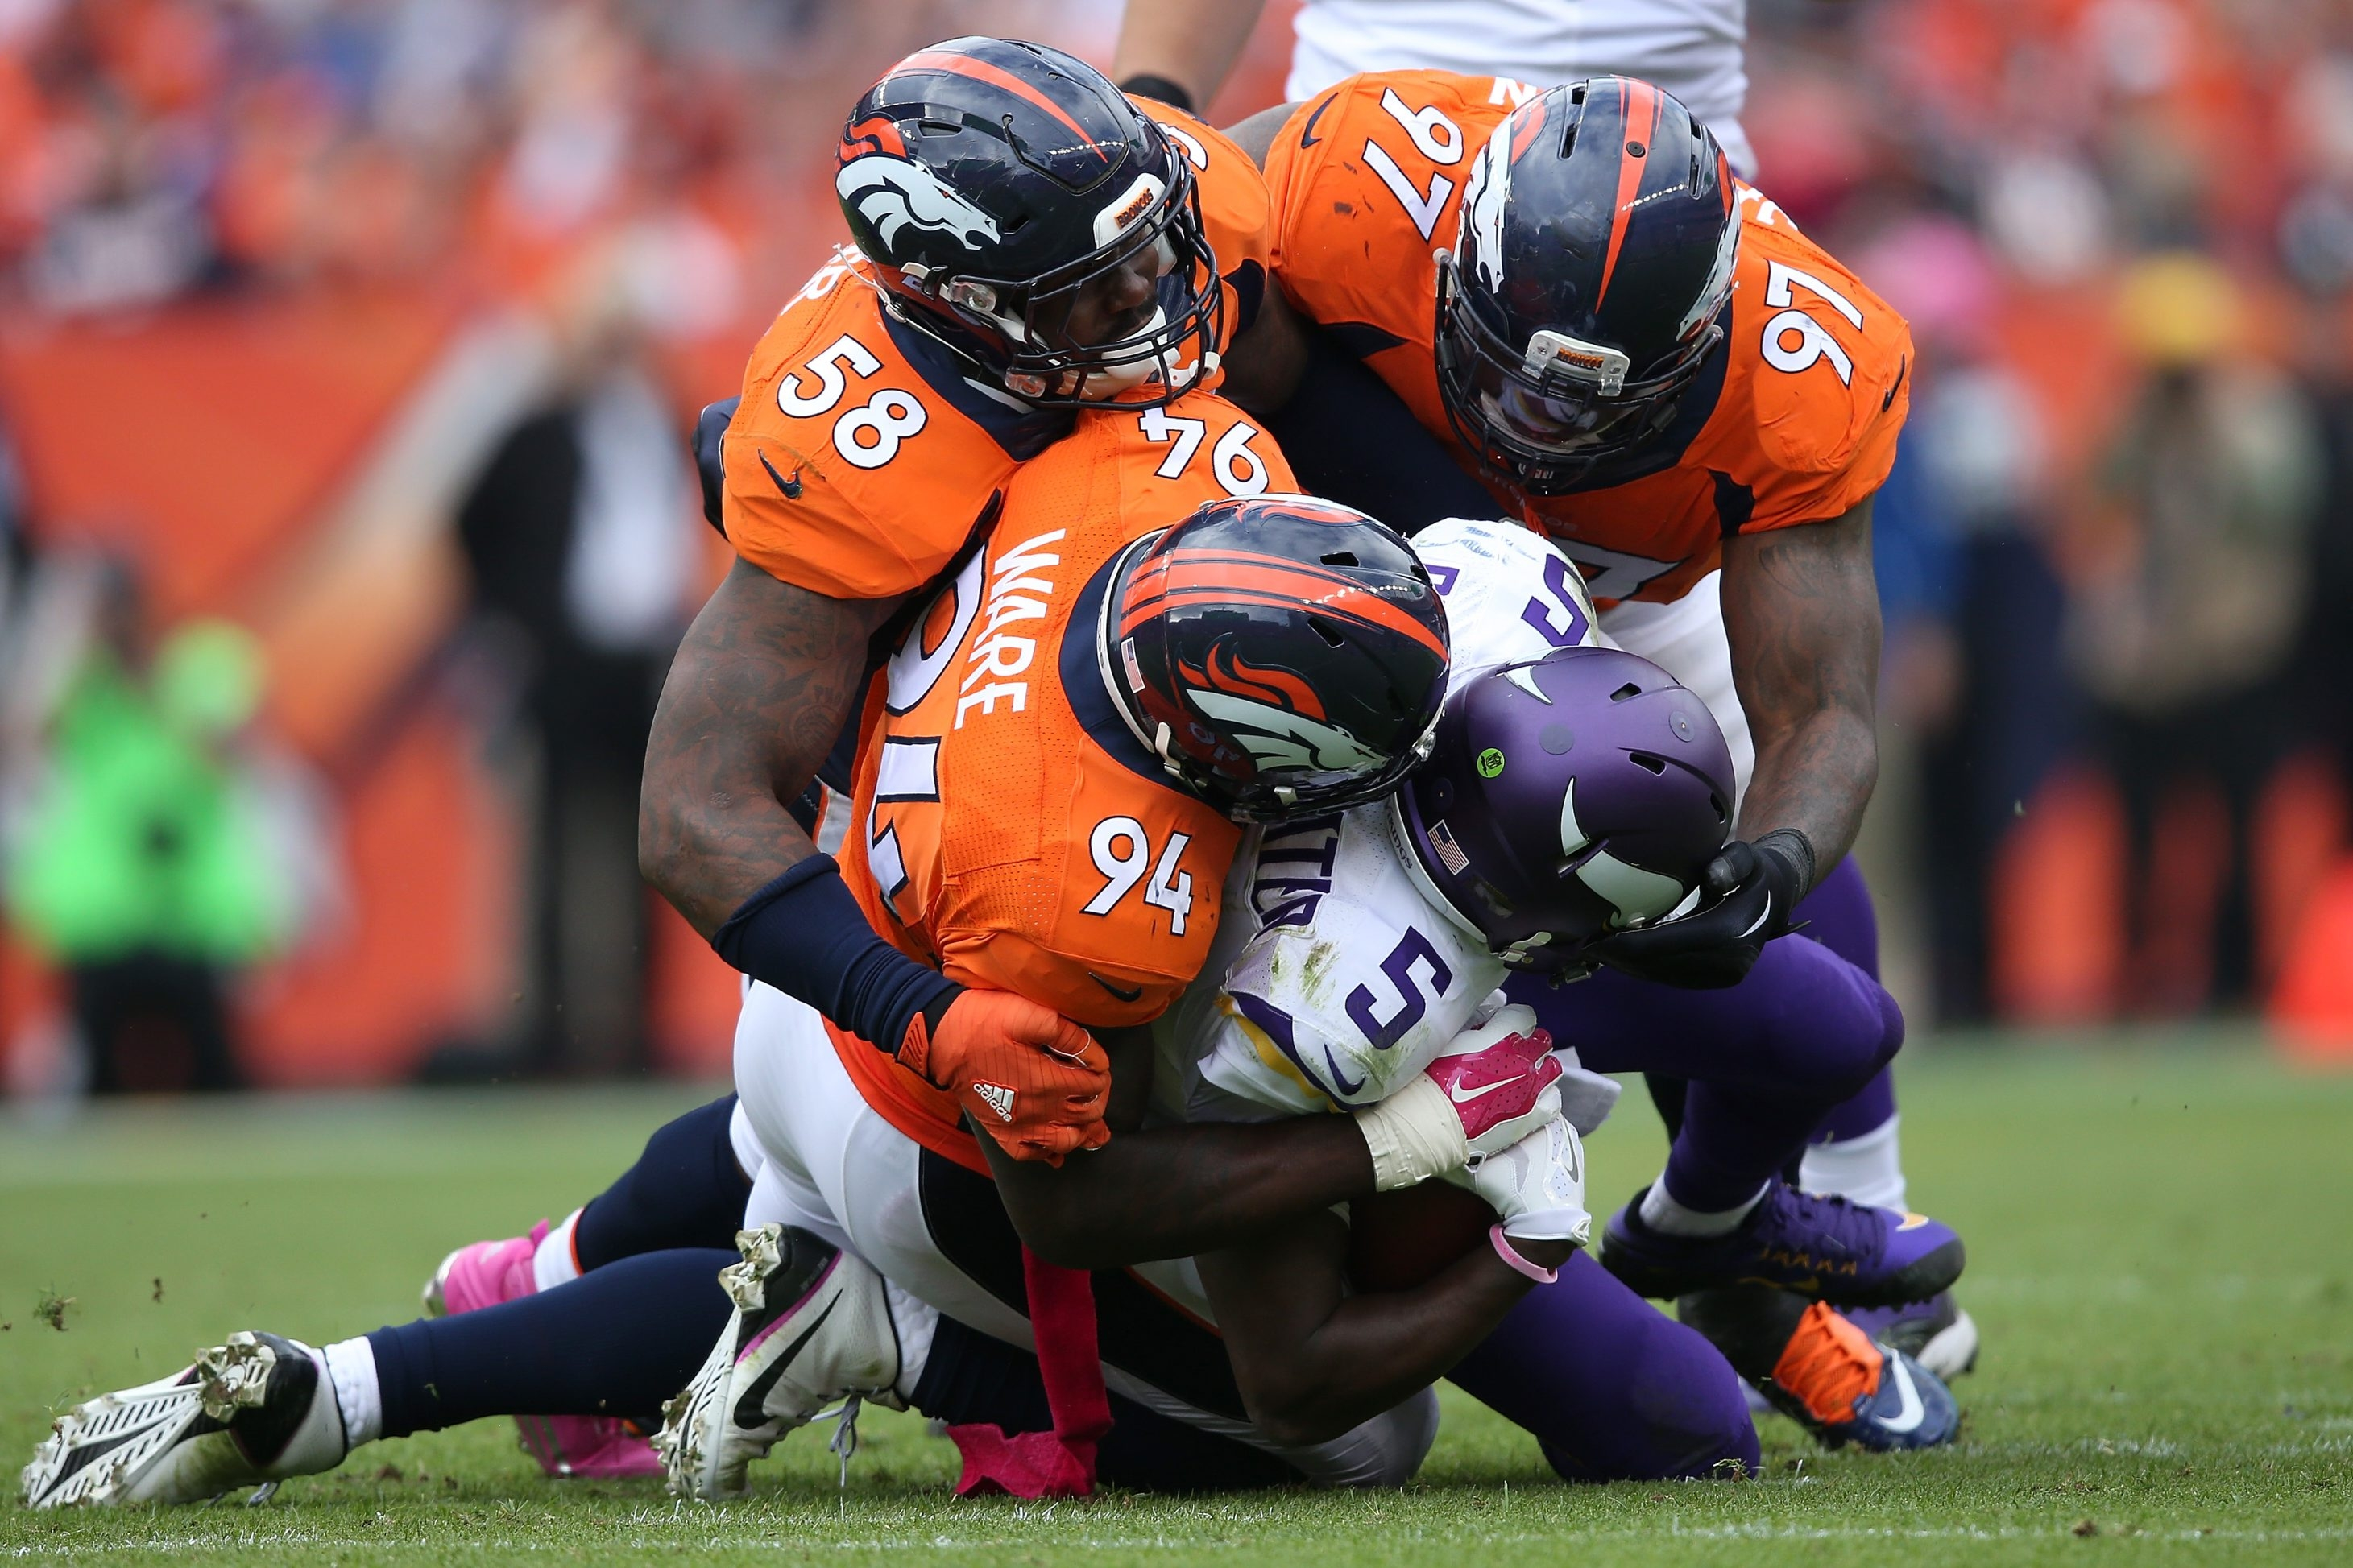 Outside linebacker Von Miller, linebacker DeMarcus Ware and defensive end Malik Jackson of the Denver Broncos gang tackle quarterback Teddy Bridgewater of the Minnesota Vikings in their game in Denver on Oct. 4. (Photo by Doug Pensinger/Getty Images)